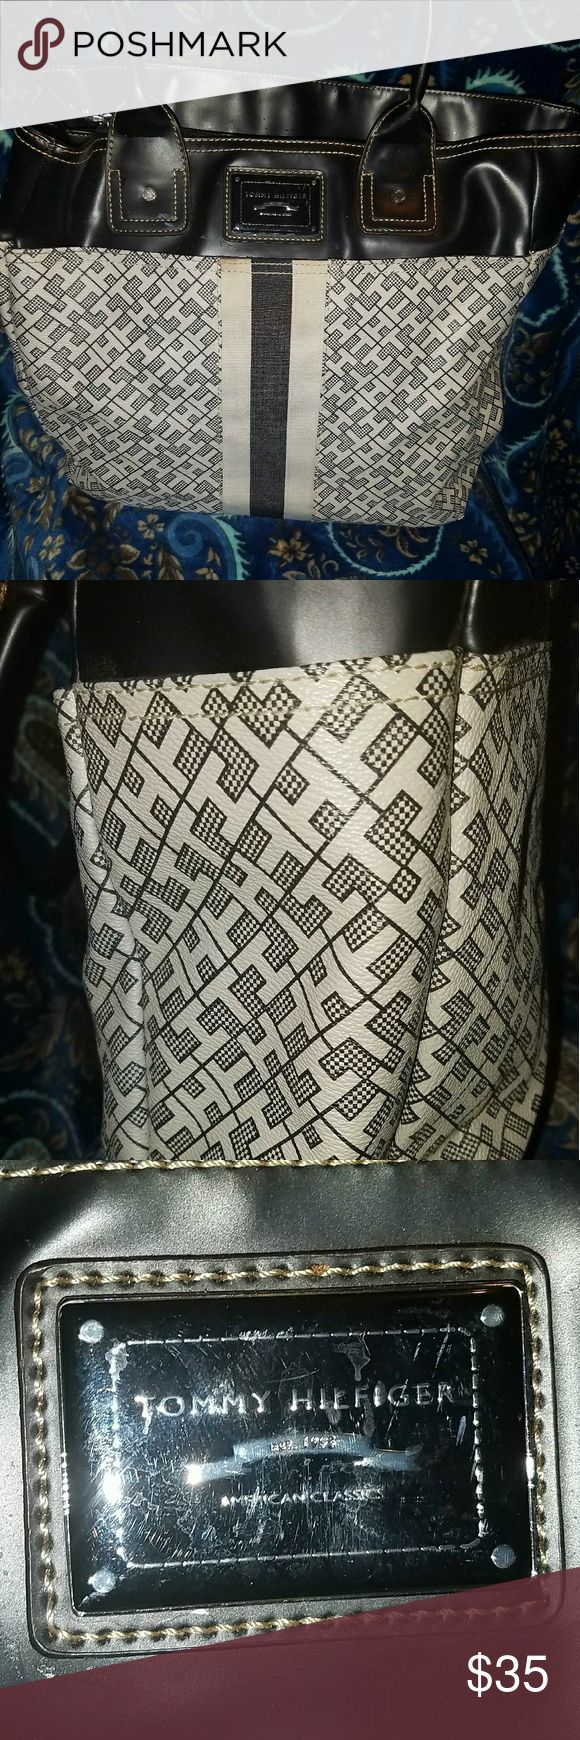 Large Tommy Hilfiger Tote Bag in Blue Tommy Hilfiger Tote Bag. Very Large over a foot Tall & Wide. In Perfect Condition. Its Dark Blue & White with Leather Trim. Please Message Me With Any Questions You May Have. THANKS Tommy Hilfiger Bags Totes